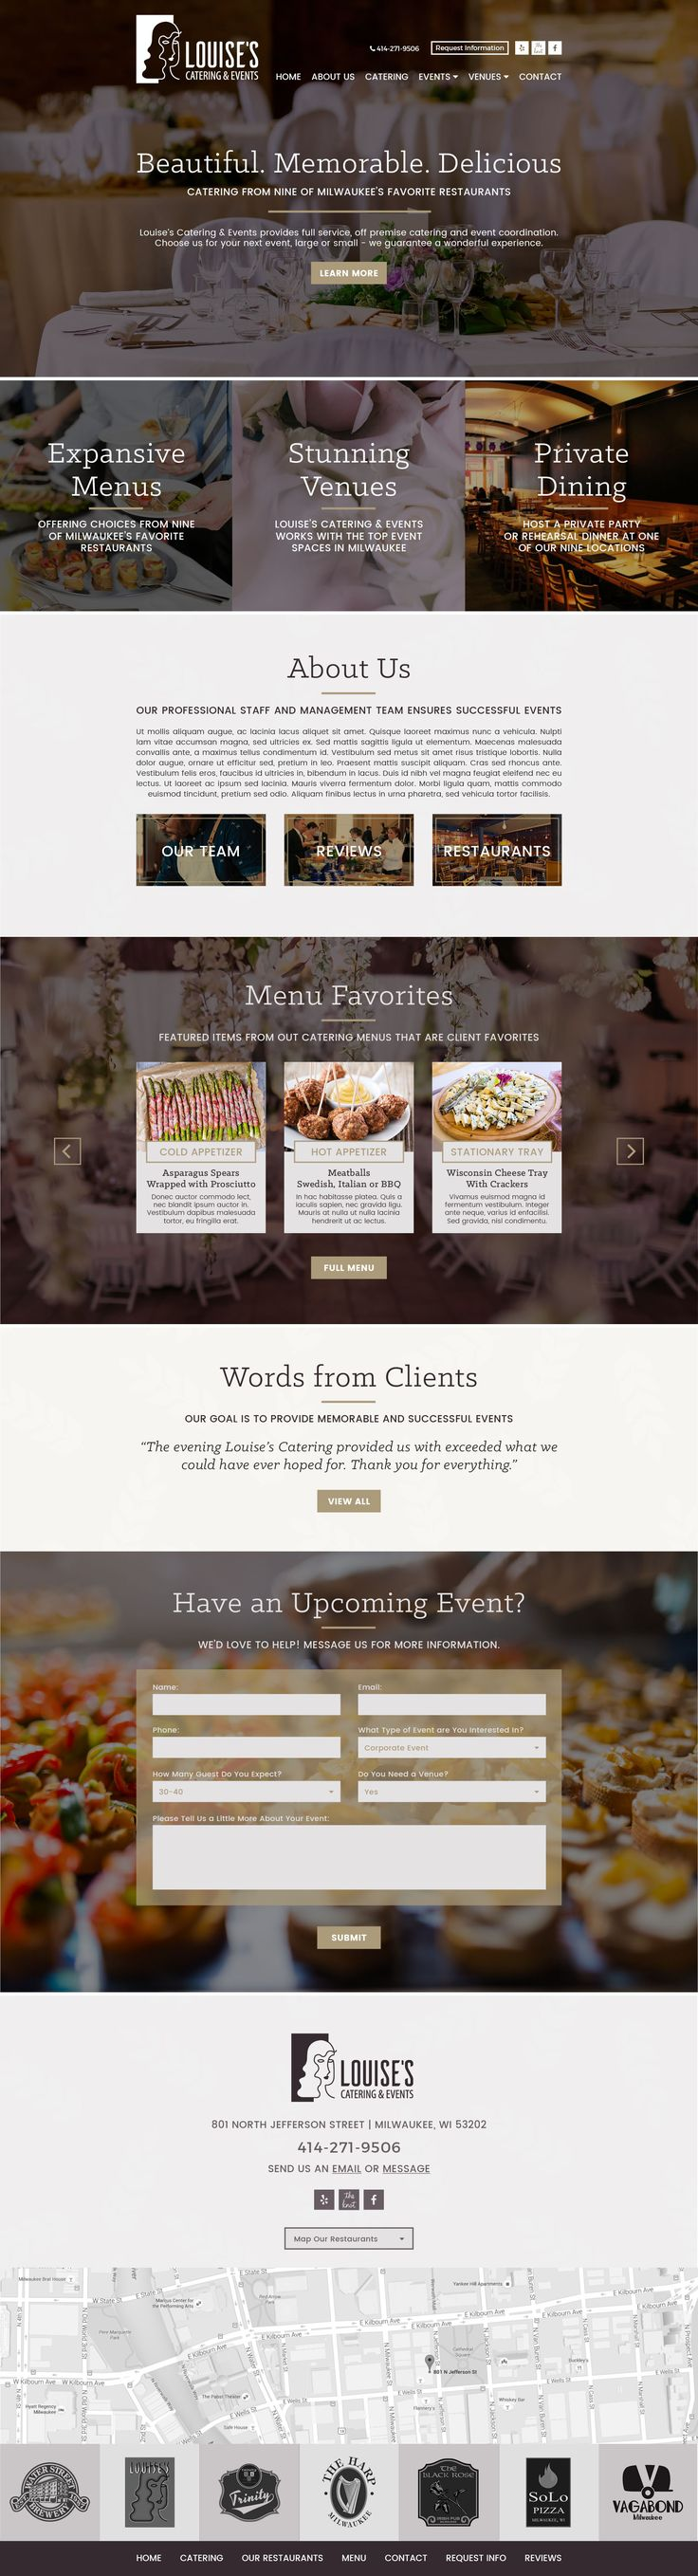 If you live in Milwaukee, you're probably already familiar with Louise's Catering & Events. Not only is Louise's well-known for providing top-notch catering and event coordination, they're also part of the same restaurant group that owns classic Milwaukee hotspots like Water Street Brewery and Trinity Three Irish Pubs. The Louise's team wanted some help creating …